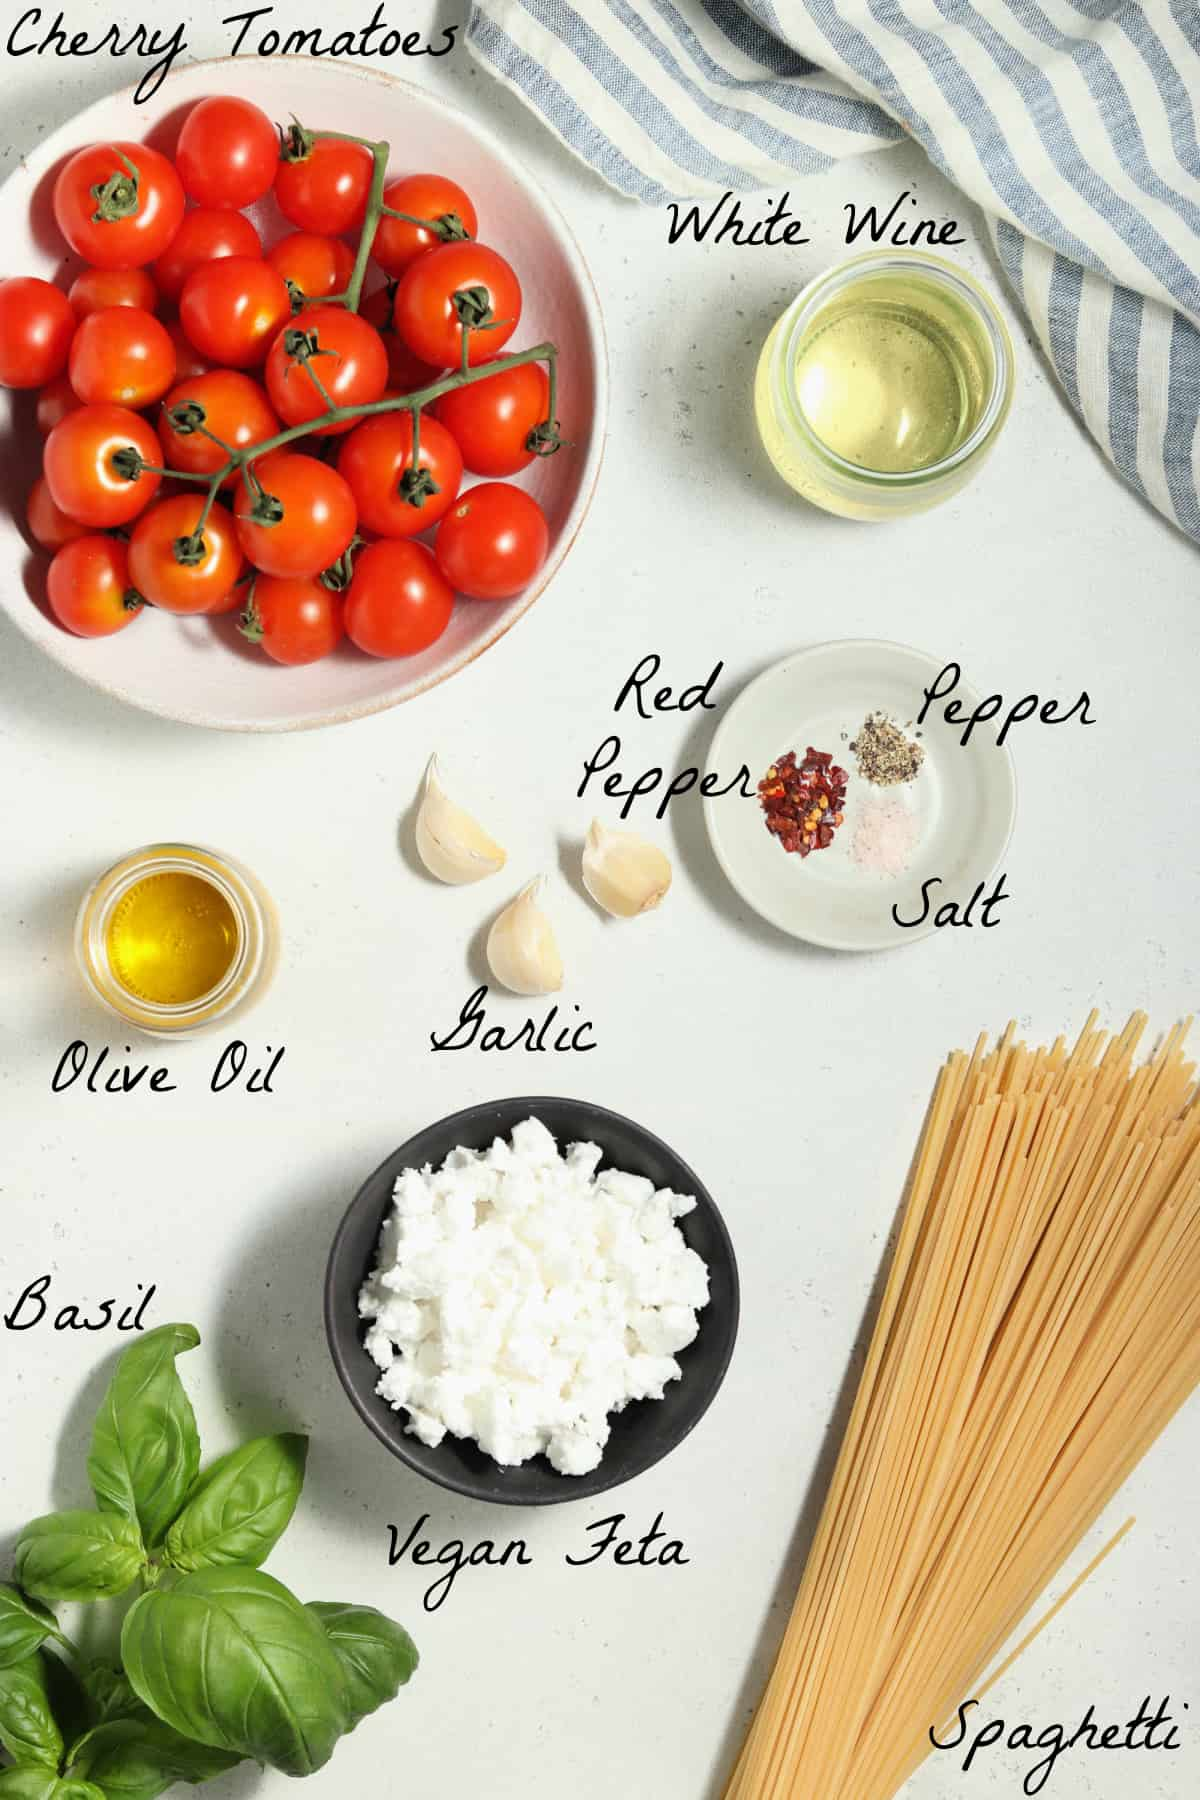 Ingredients to make the recipe spread out on a table top.